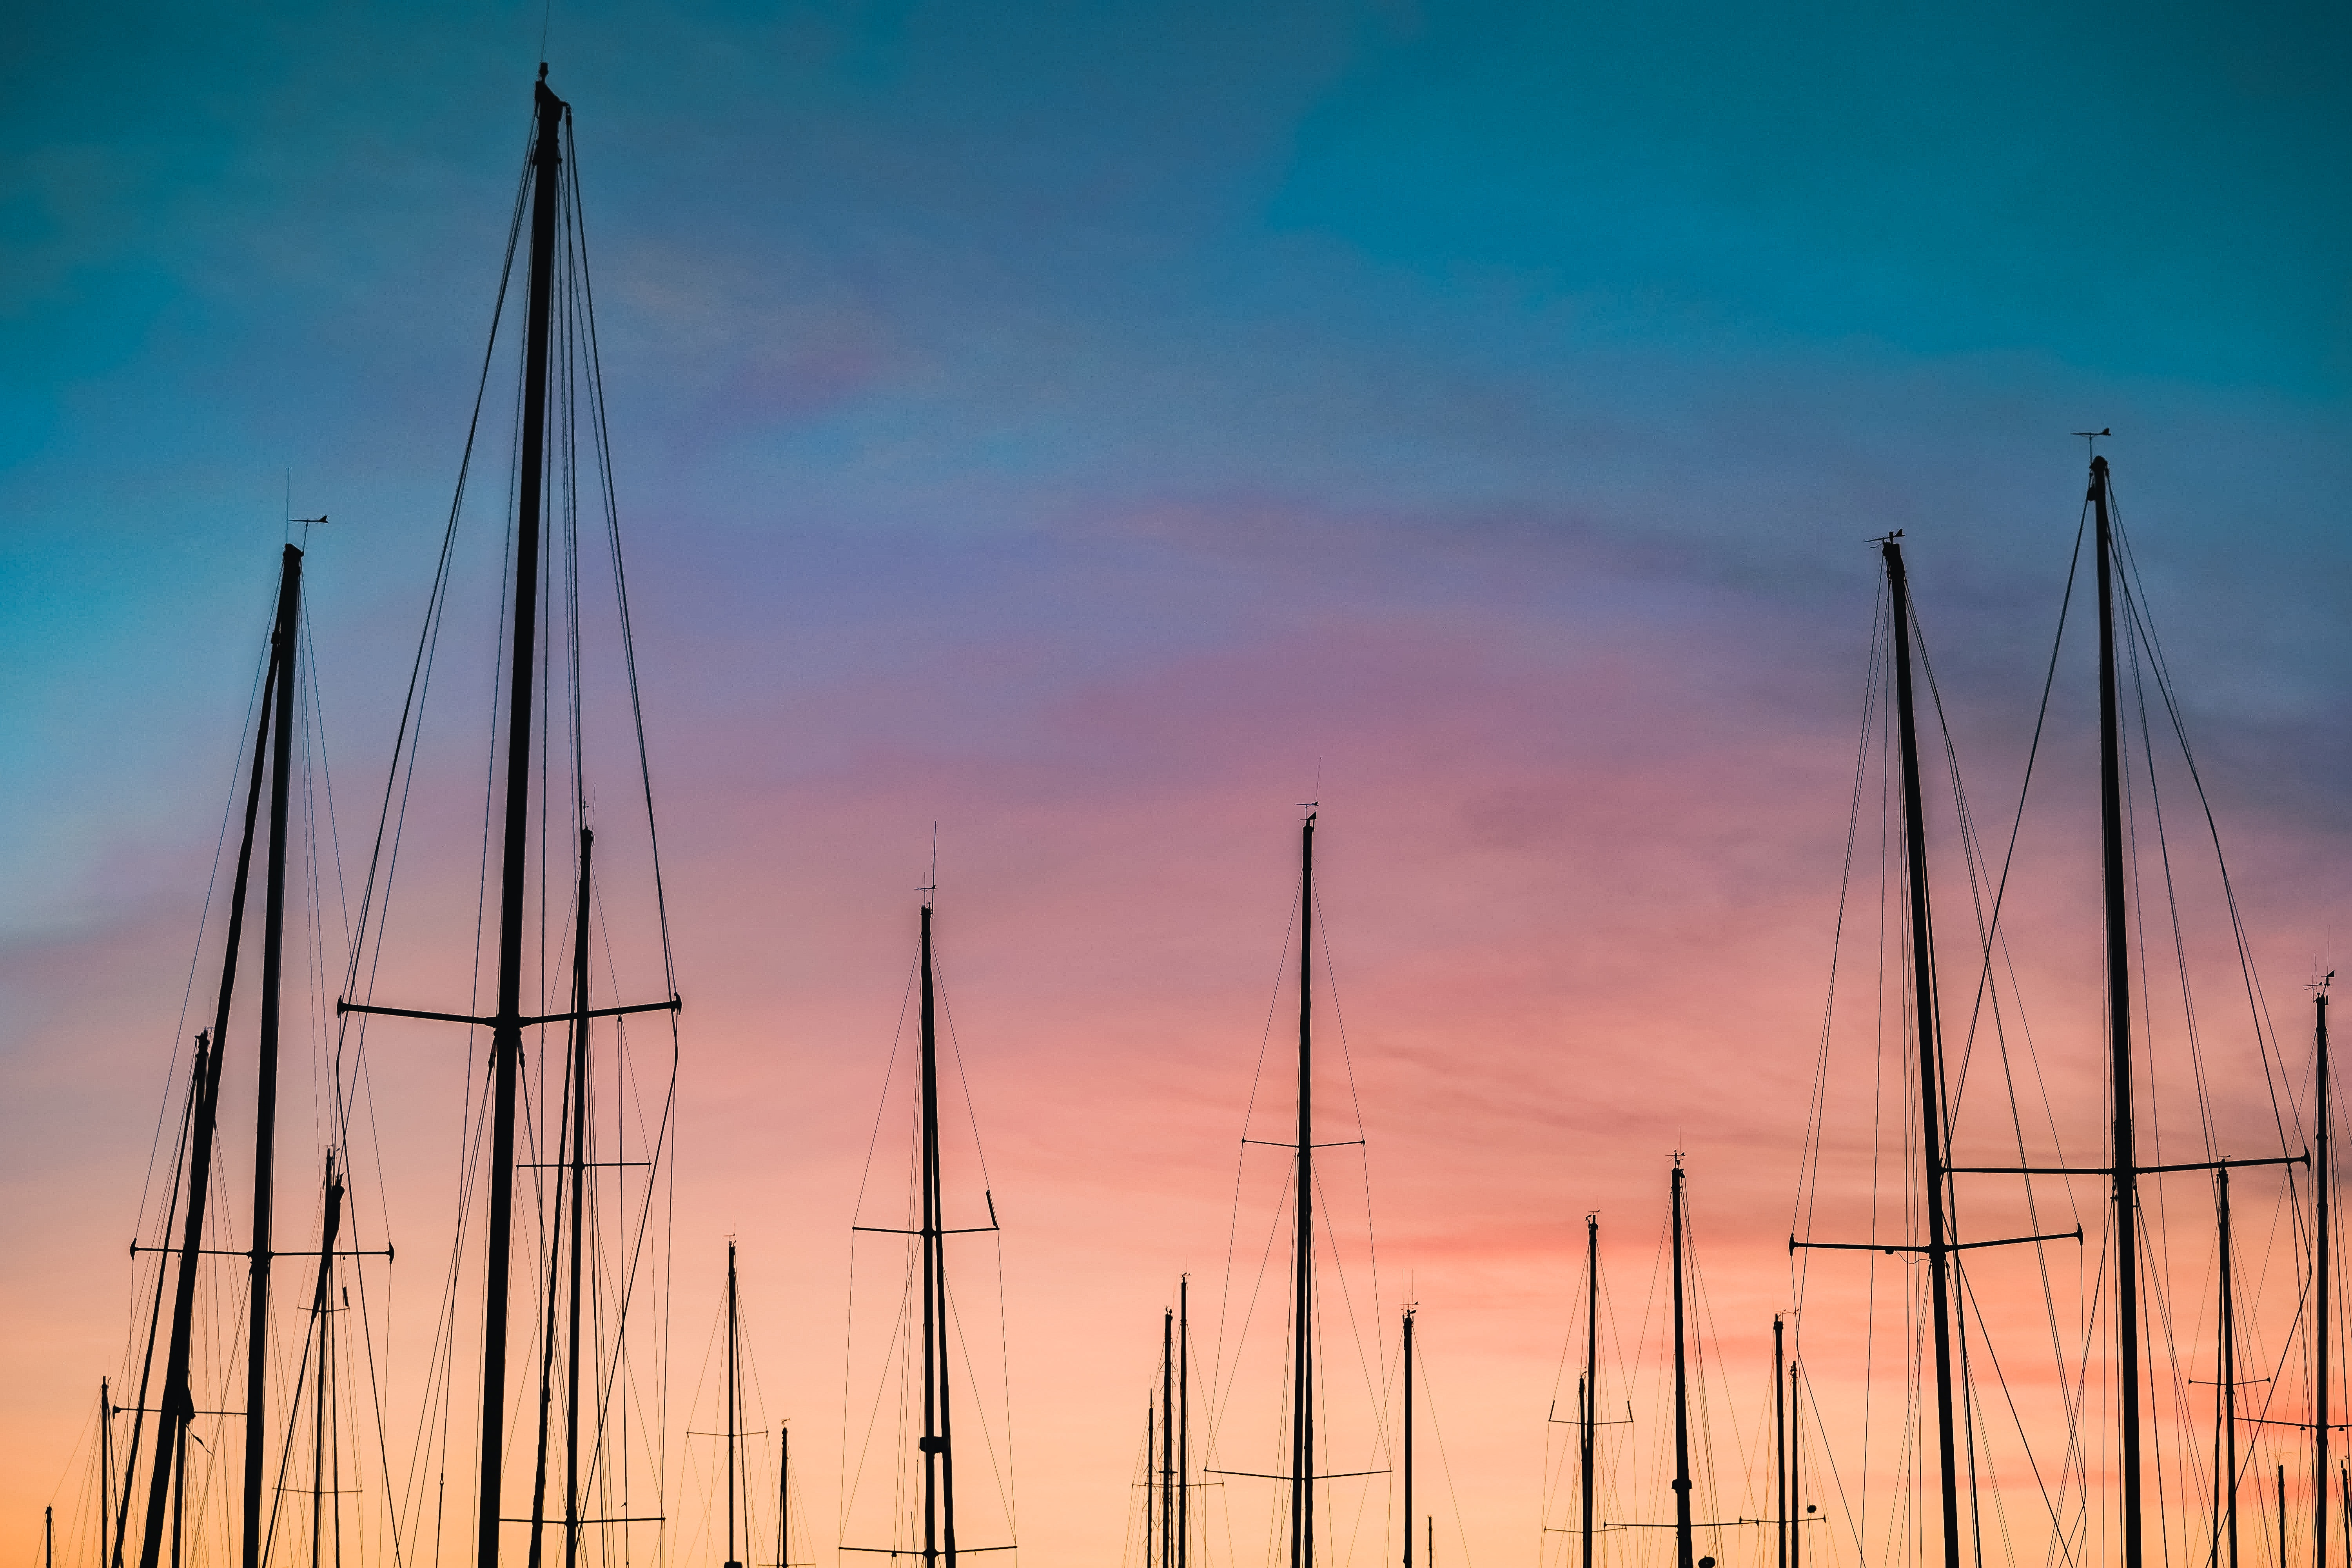 silhouette photography of sailboats